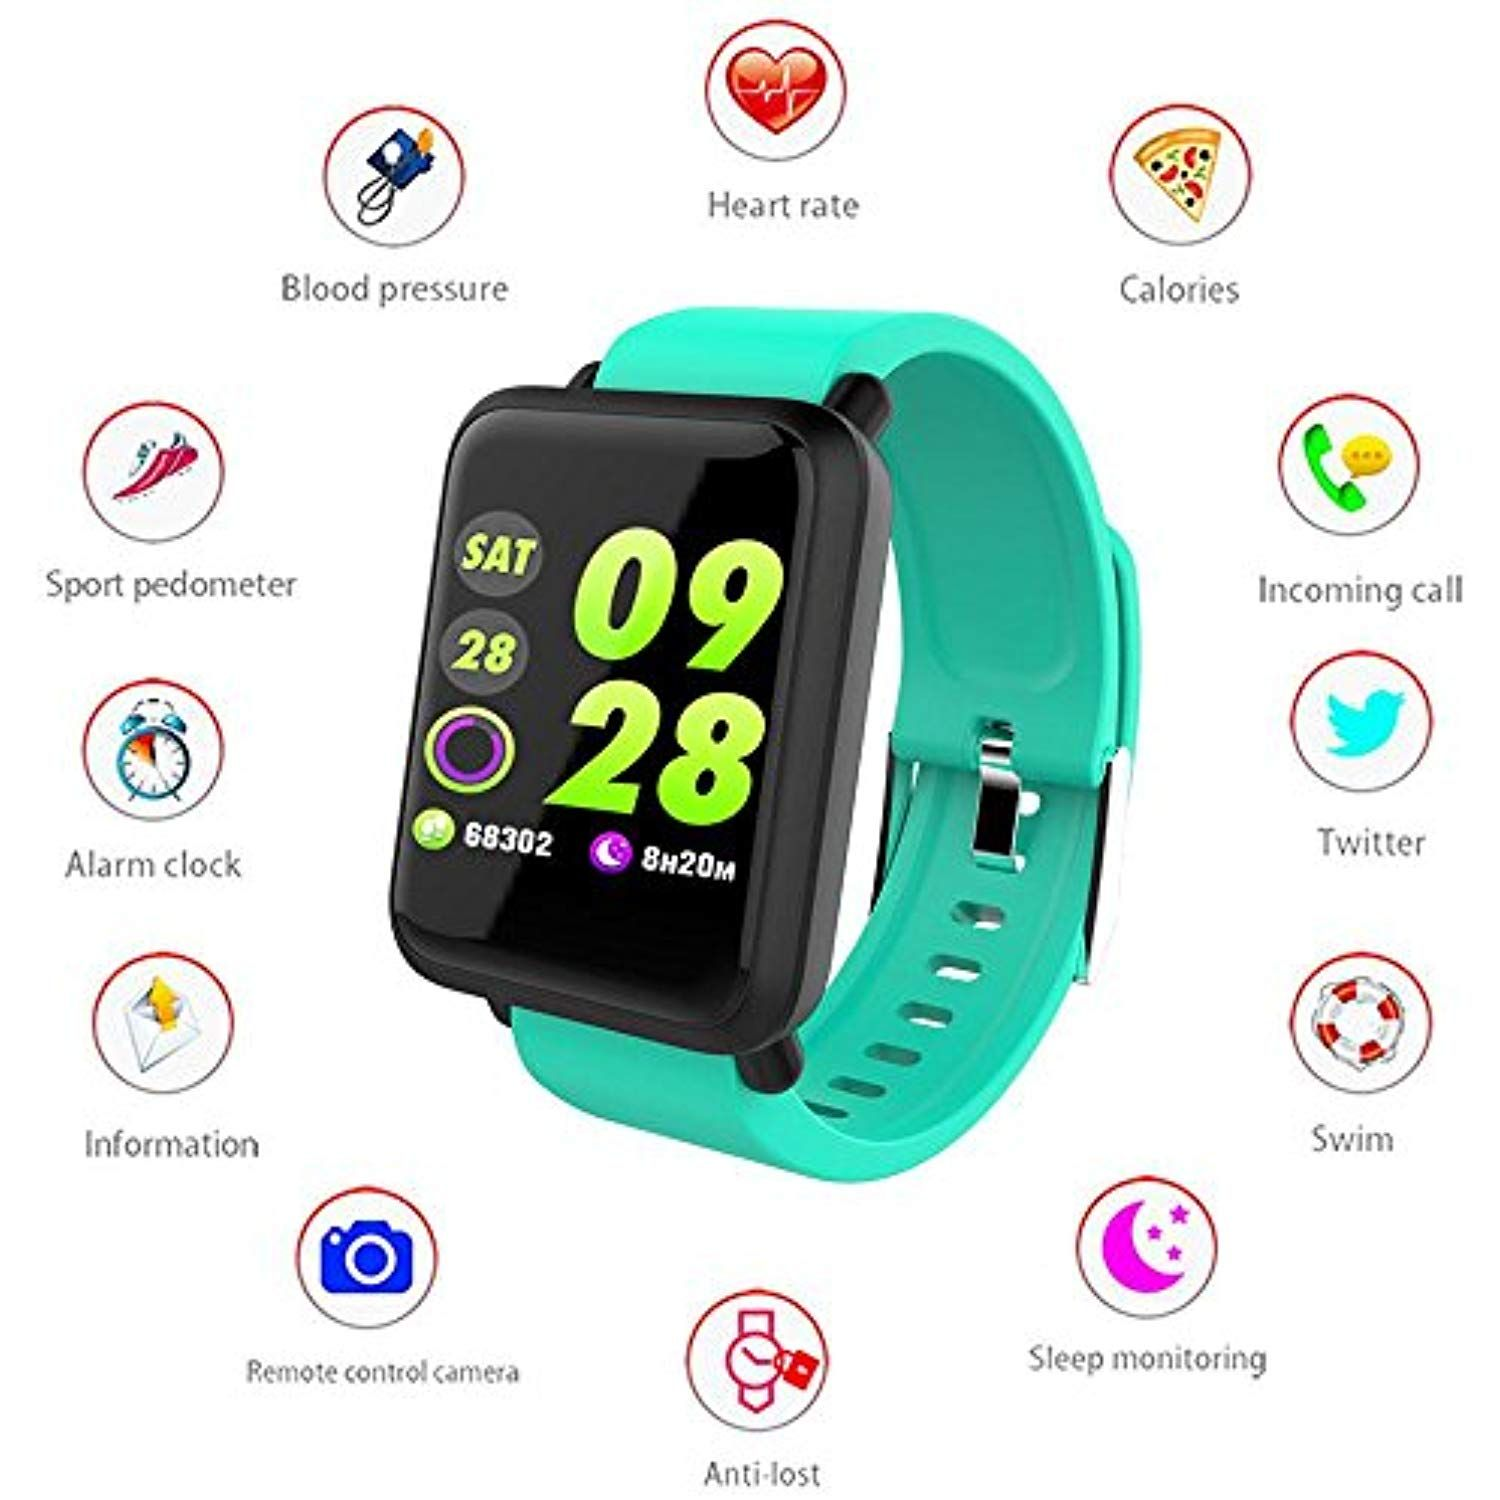 Leegoal Activity Tracker Watch Ip67 Waterproof Fitness Tracker With Heart Rate Monitor For Androi Fitness Watches For Men Waterproof Fitness Tracker Pedometer